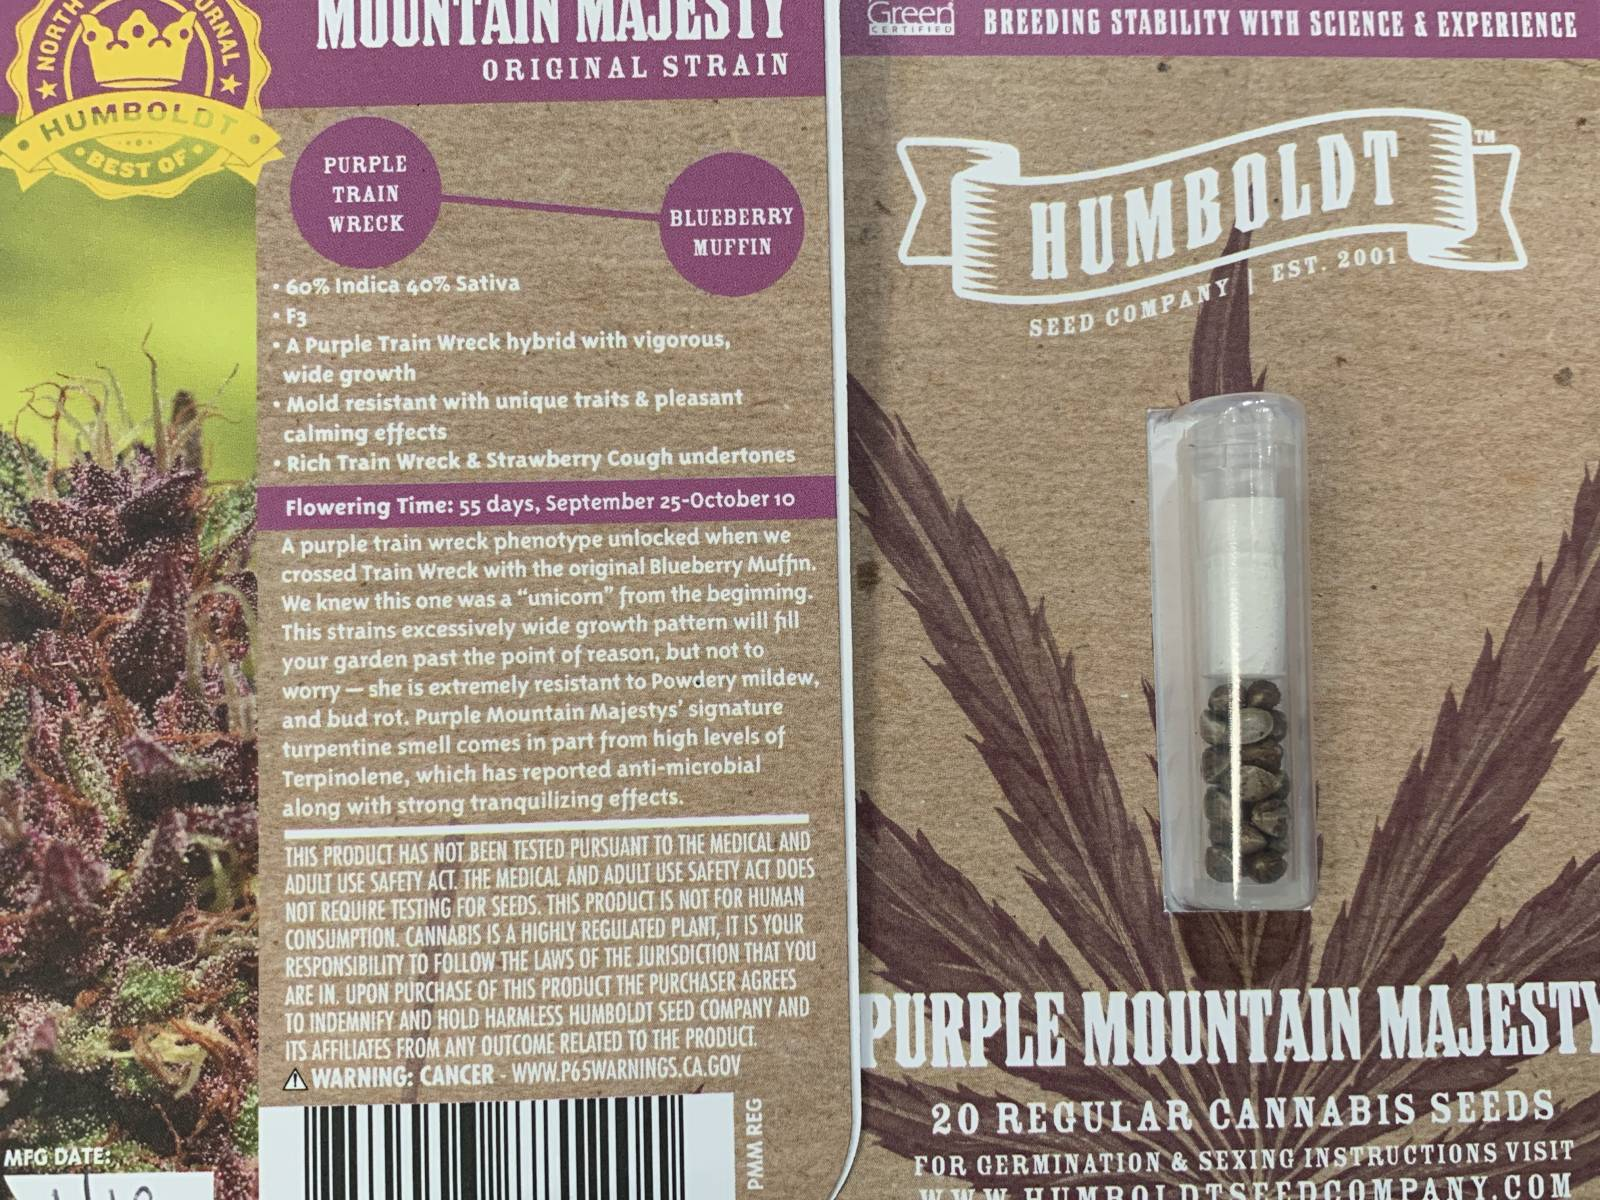 Humboldt Seed Co purple mountain majesty